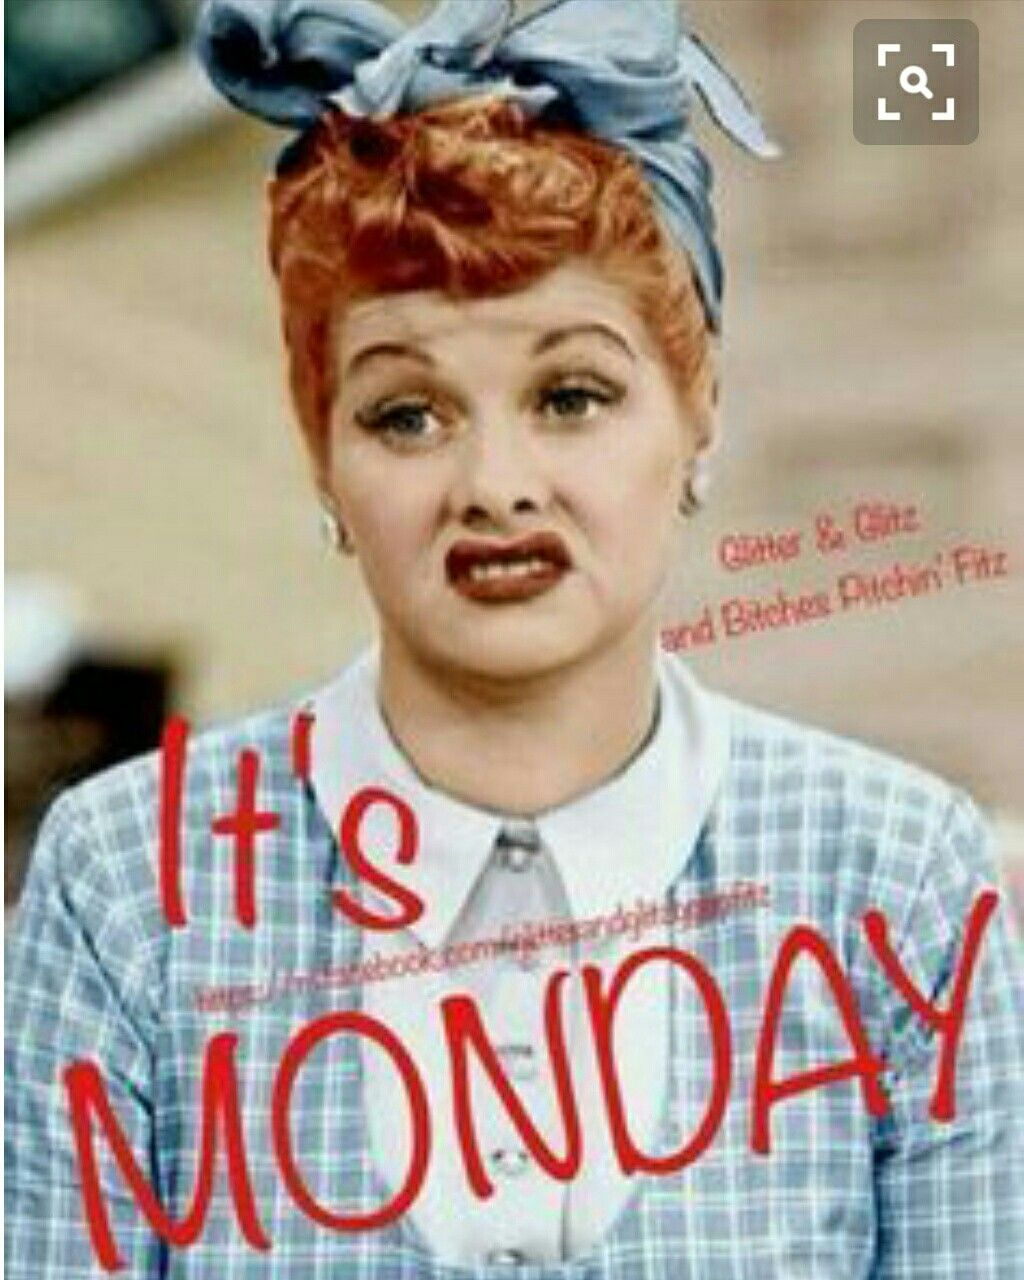 I Love Lucy Monday Meme With The Funny Face You Know Lucy Strikes When She S Did Pleased Mondaymotivatio Monday Humor Monday Pictures Good Morning Handsome